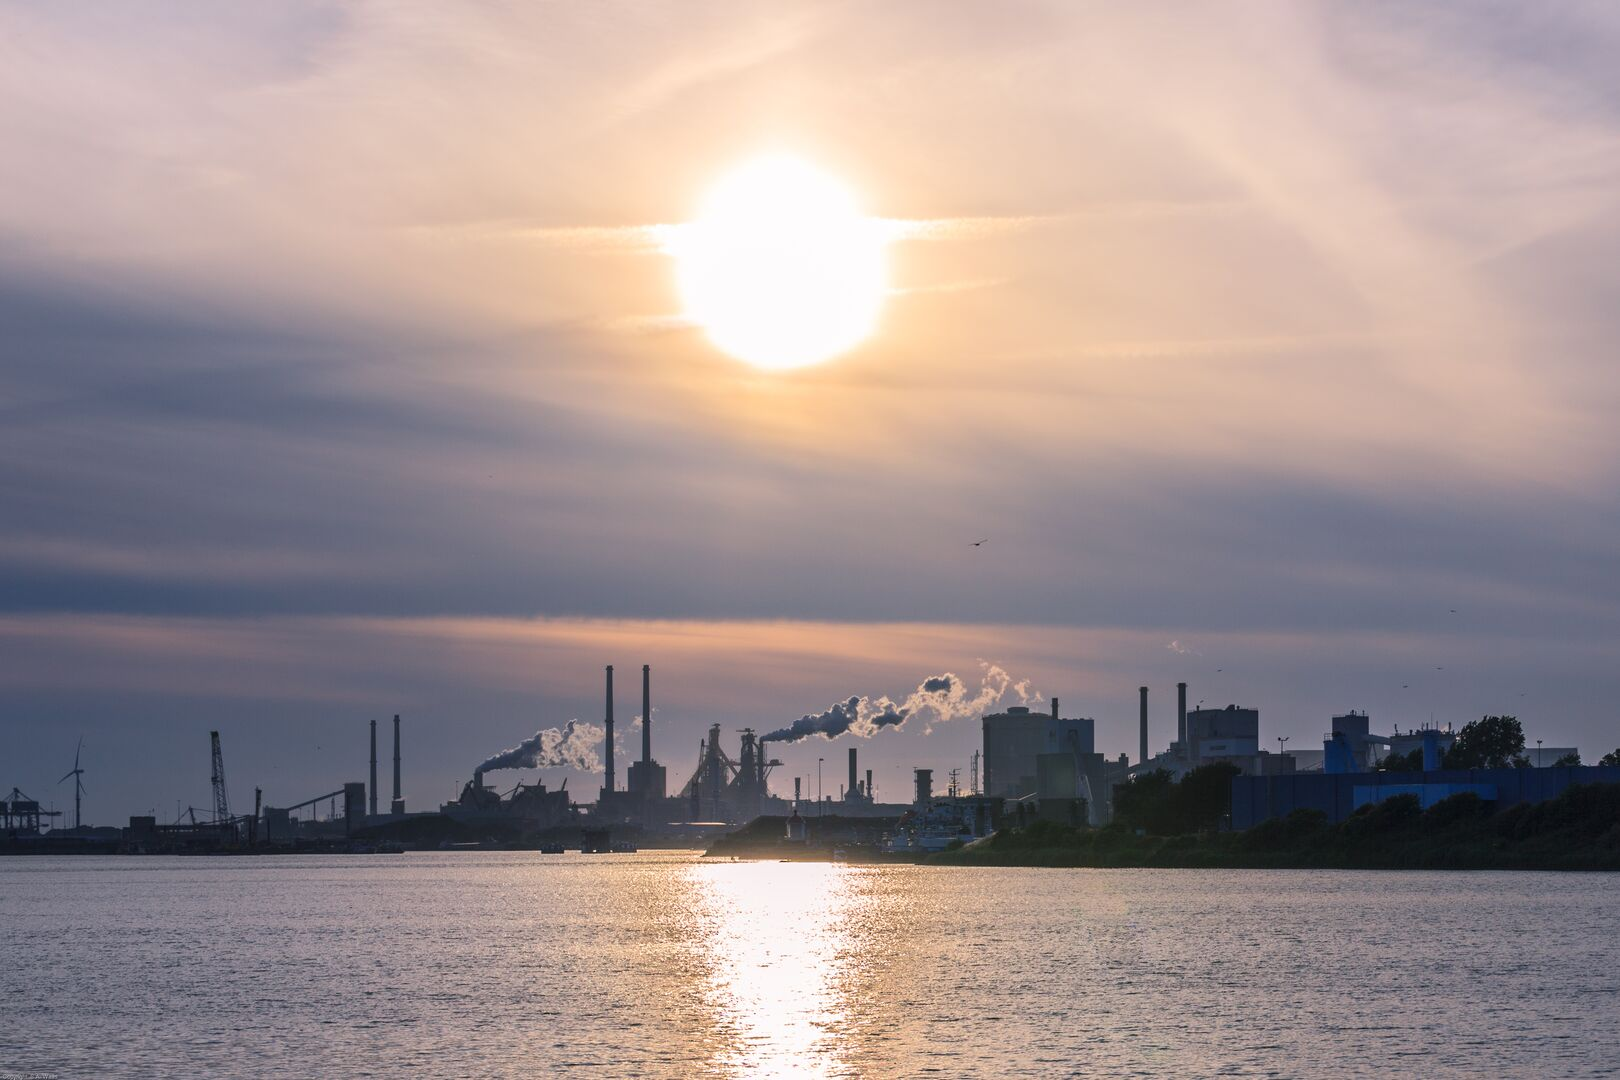 Tata Steel in IJmuiden at sunset